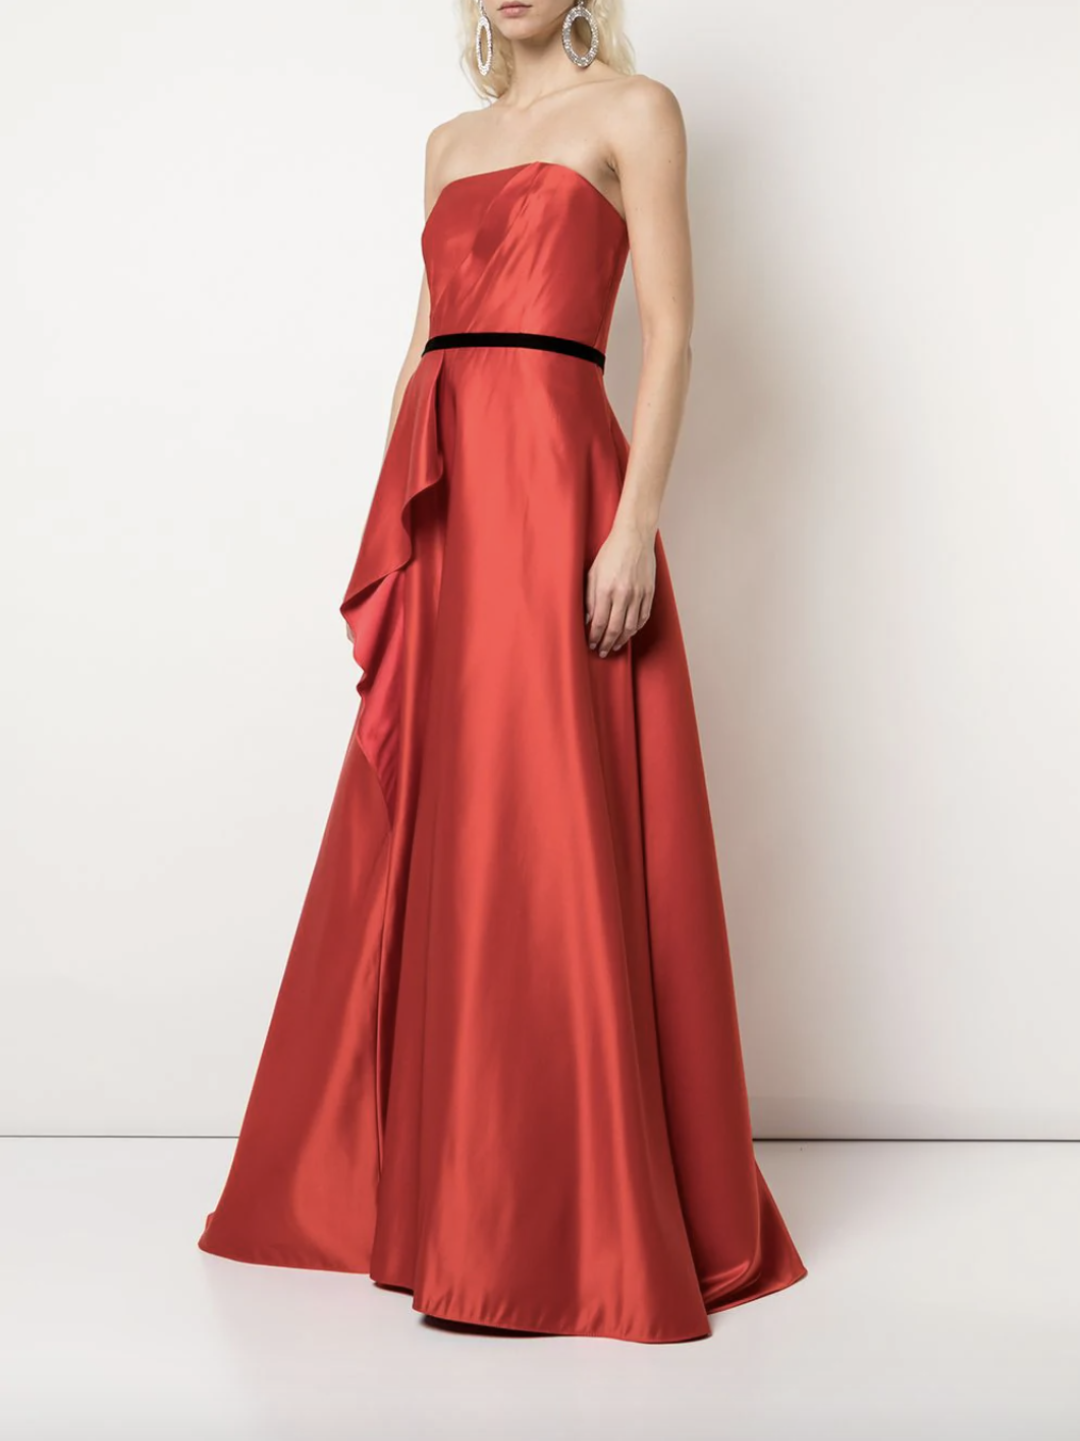 Strapless Satin Draped Silk Ballgown